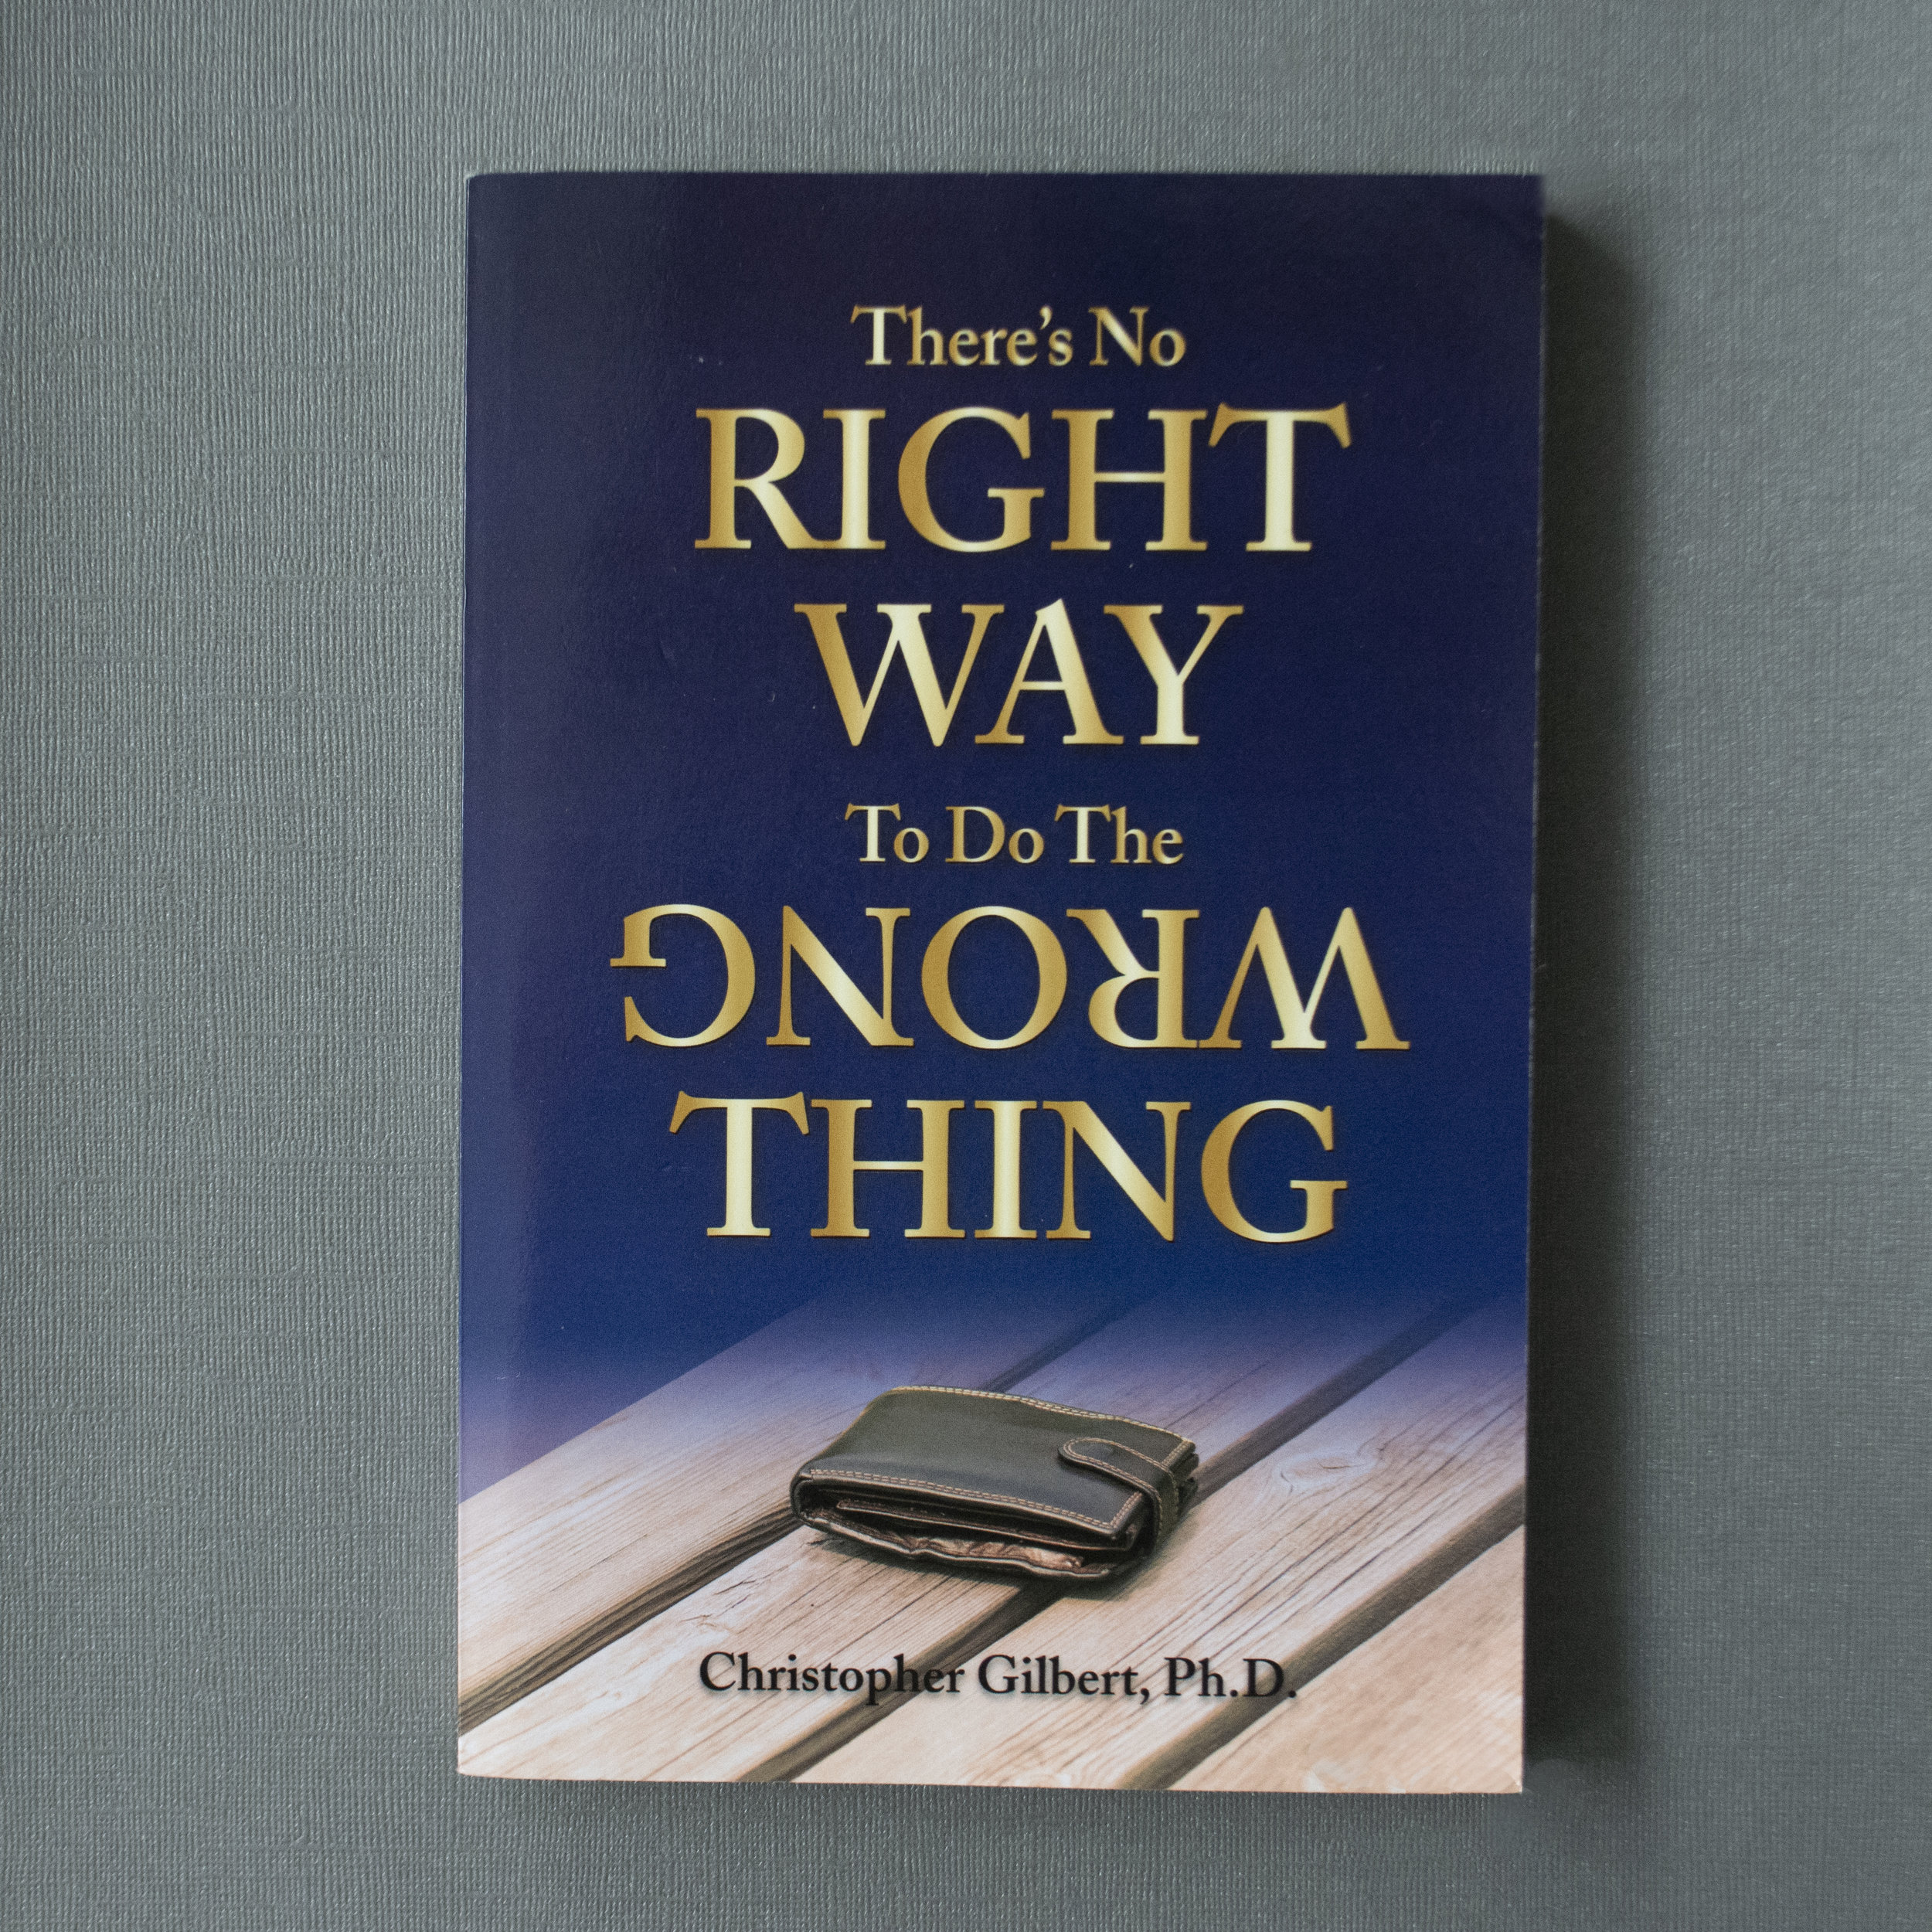 "There's No Right Way to Do the Wrong Thing - Christopher Gilbert, Ph.D. - In today's rapidly-changing, global society, do you wonder what it means to make honest decisions or how to hold yourself and others accountable in your personal, professional, and family lives? Do you want to know how you can become:- more authentic in your relationships?-more transparent in your organizations?- better able to identify the reality behind increasingly outrageous ""alternative truths""?You'll be able to find answers to these concerns and more as Dr. Gilbert invites readers into an inspirational conversation spiced with an abundance of personal stories, humorous anecdotes and invaluable guidance about making good choices. Drawing upon decades of research and international consulting experience. There's No Right Way to Do the Wrong Thing brings a fresh approach to personal growth and honesty that empowers a brighter future for all of us.Learn more on Chris' website: https://www.nobleedgeconsulting.com/"